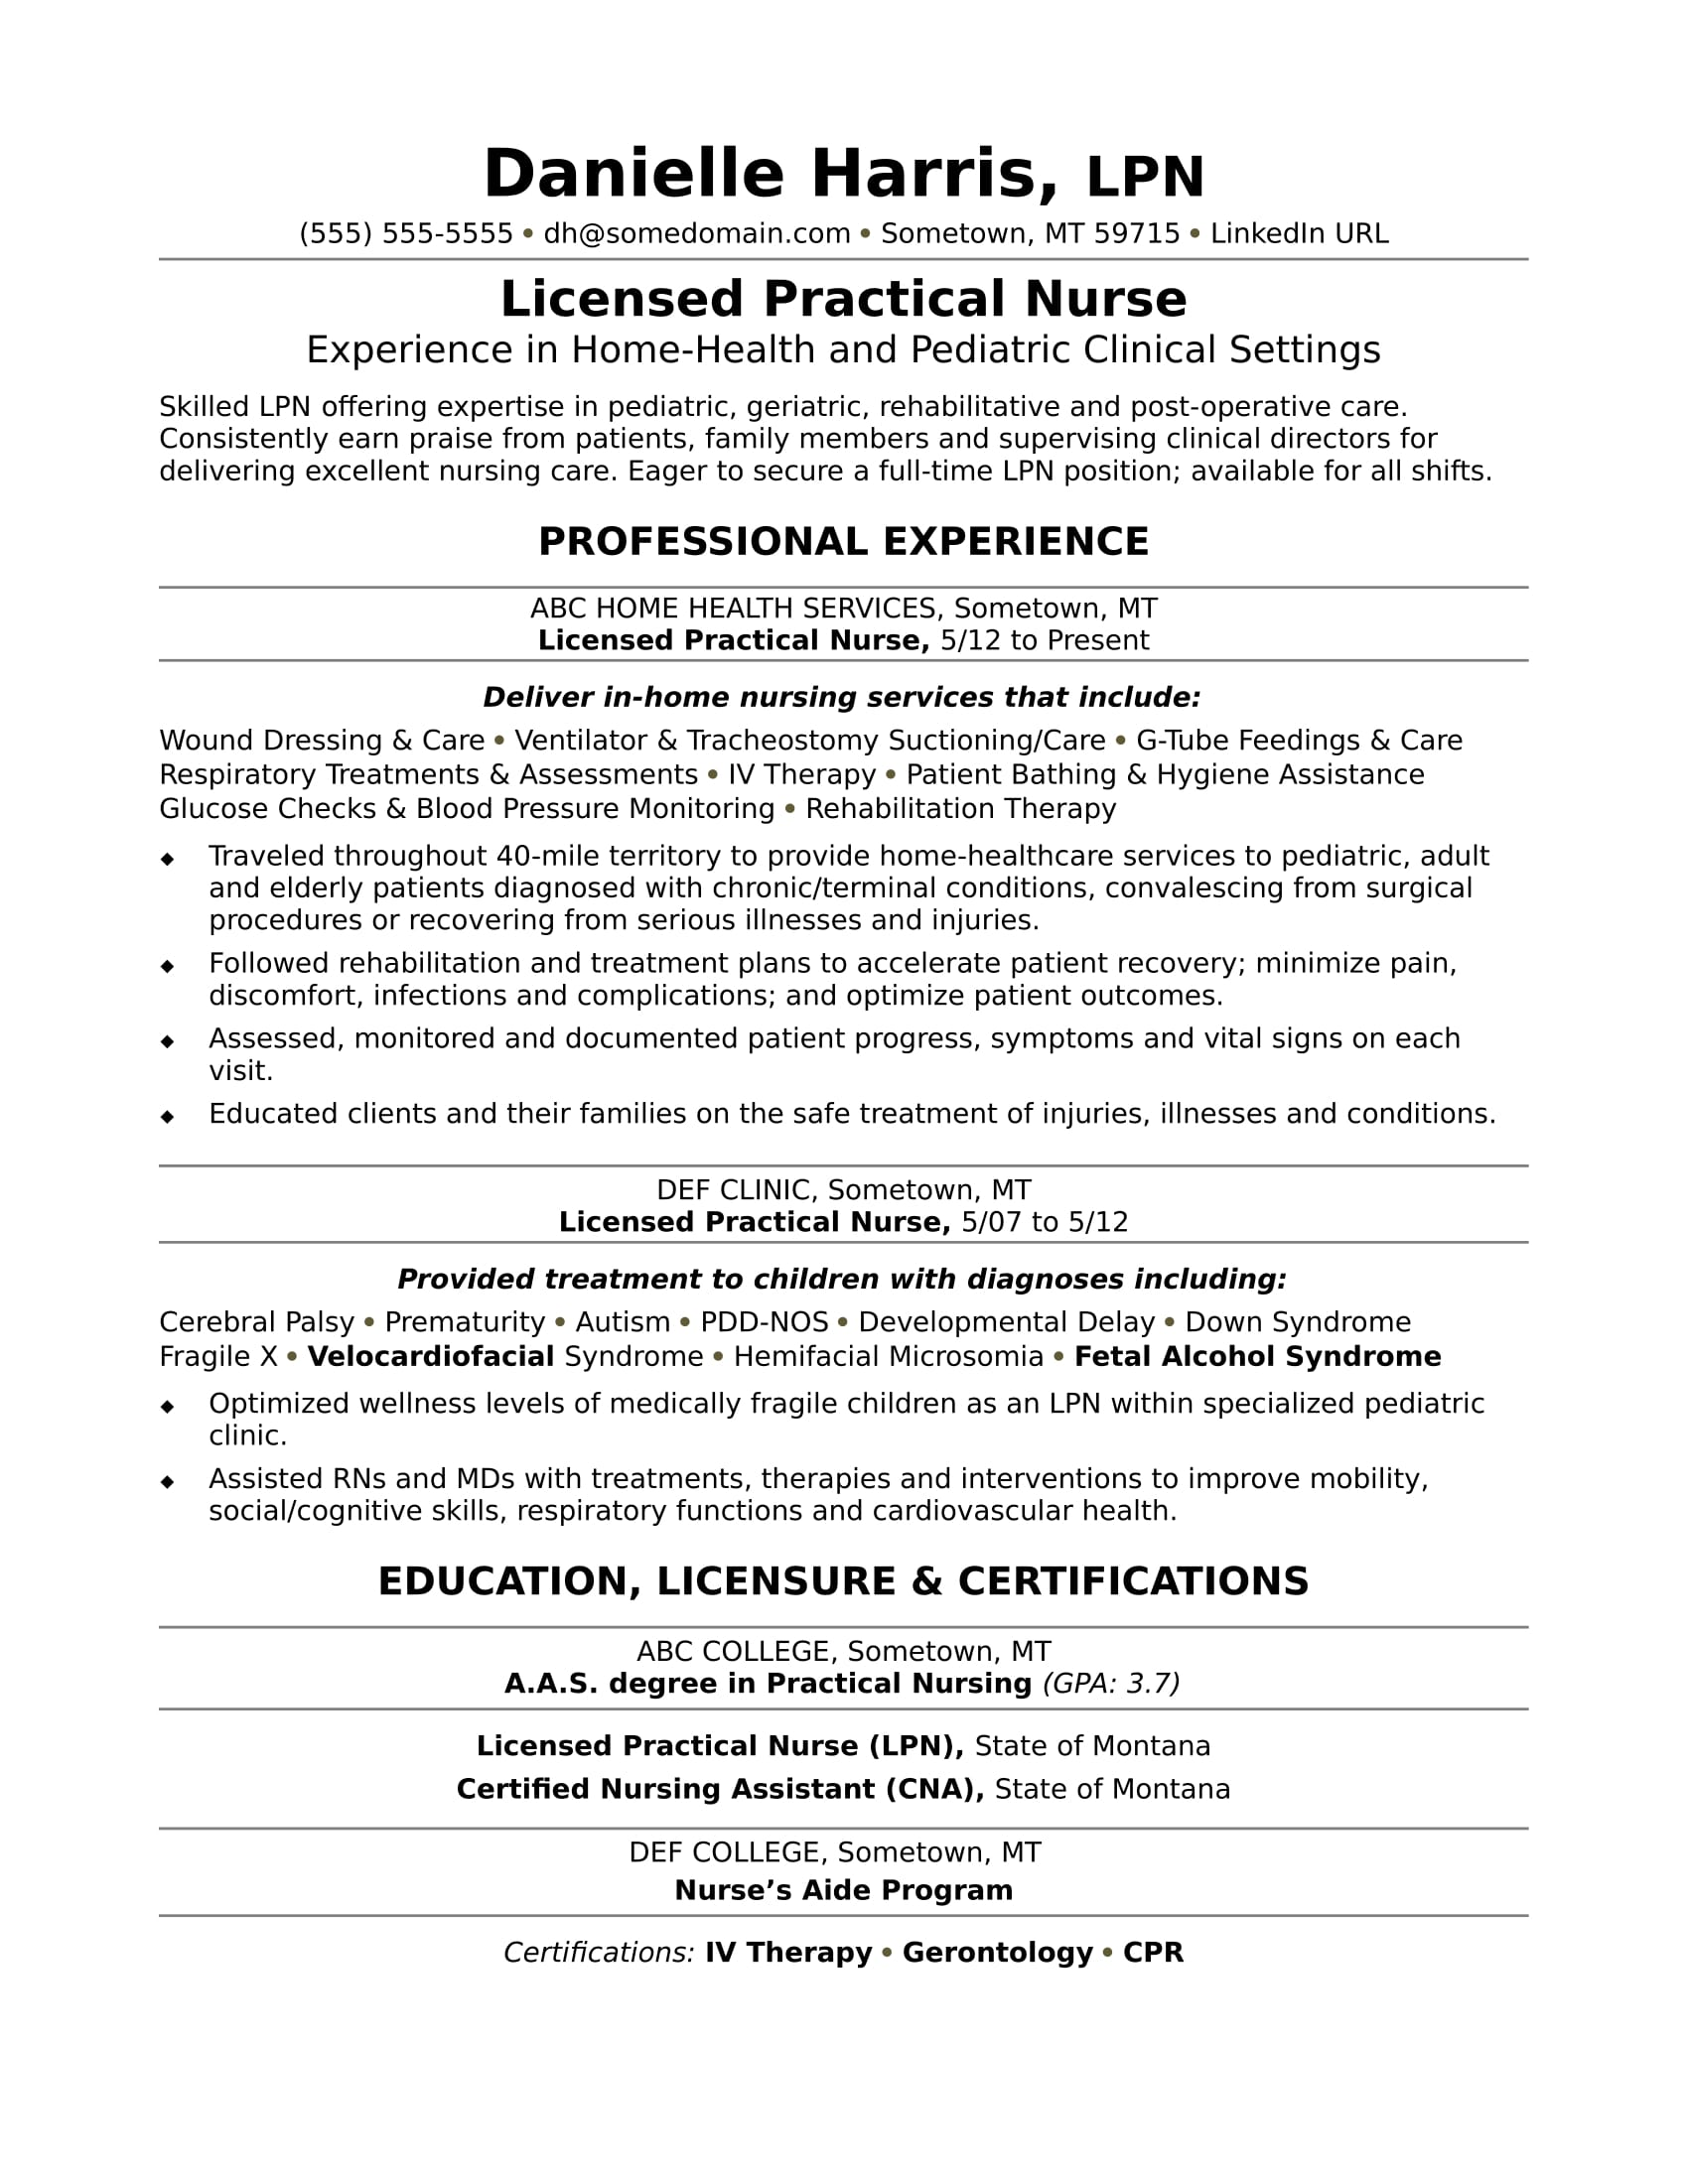 Licensed practical nurse resume sample monster licensed practical nurse resume sample thecheapjerseys Choice Image